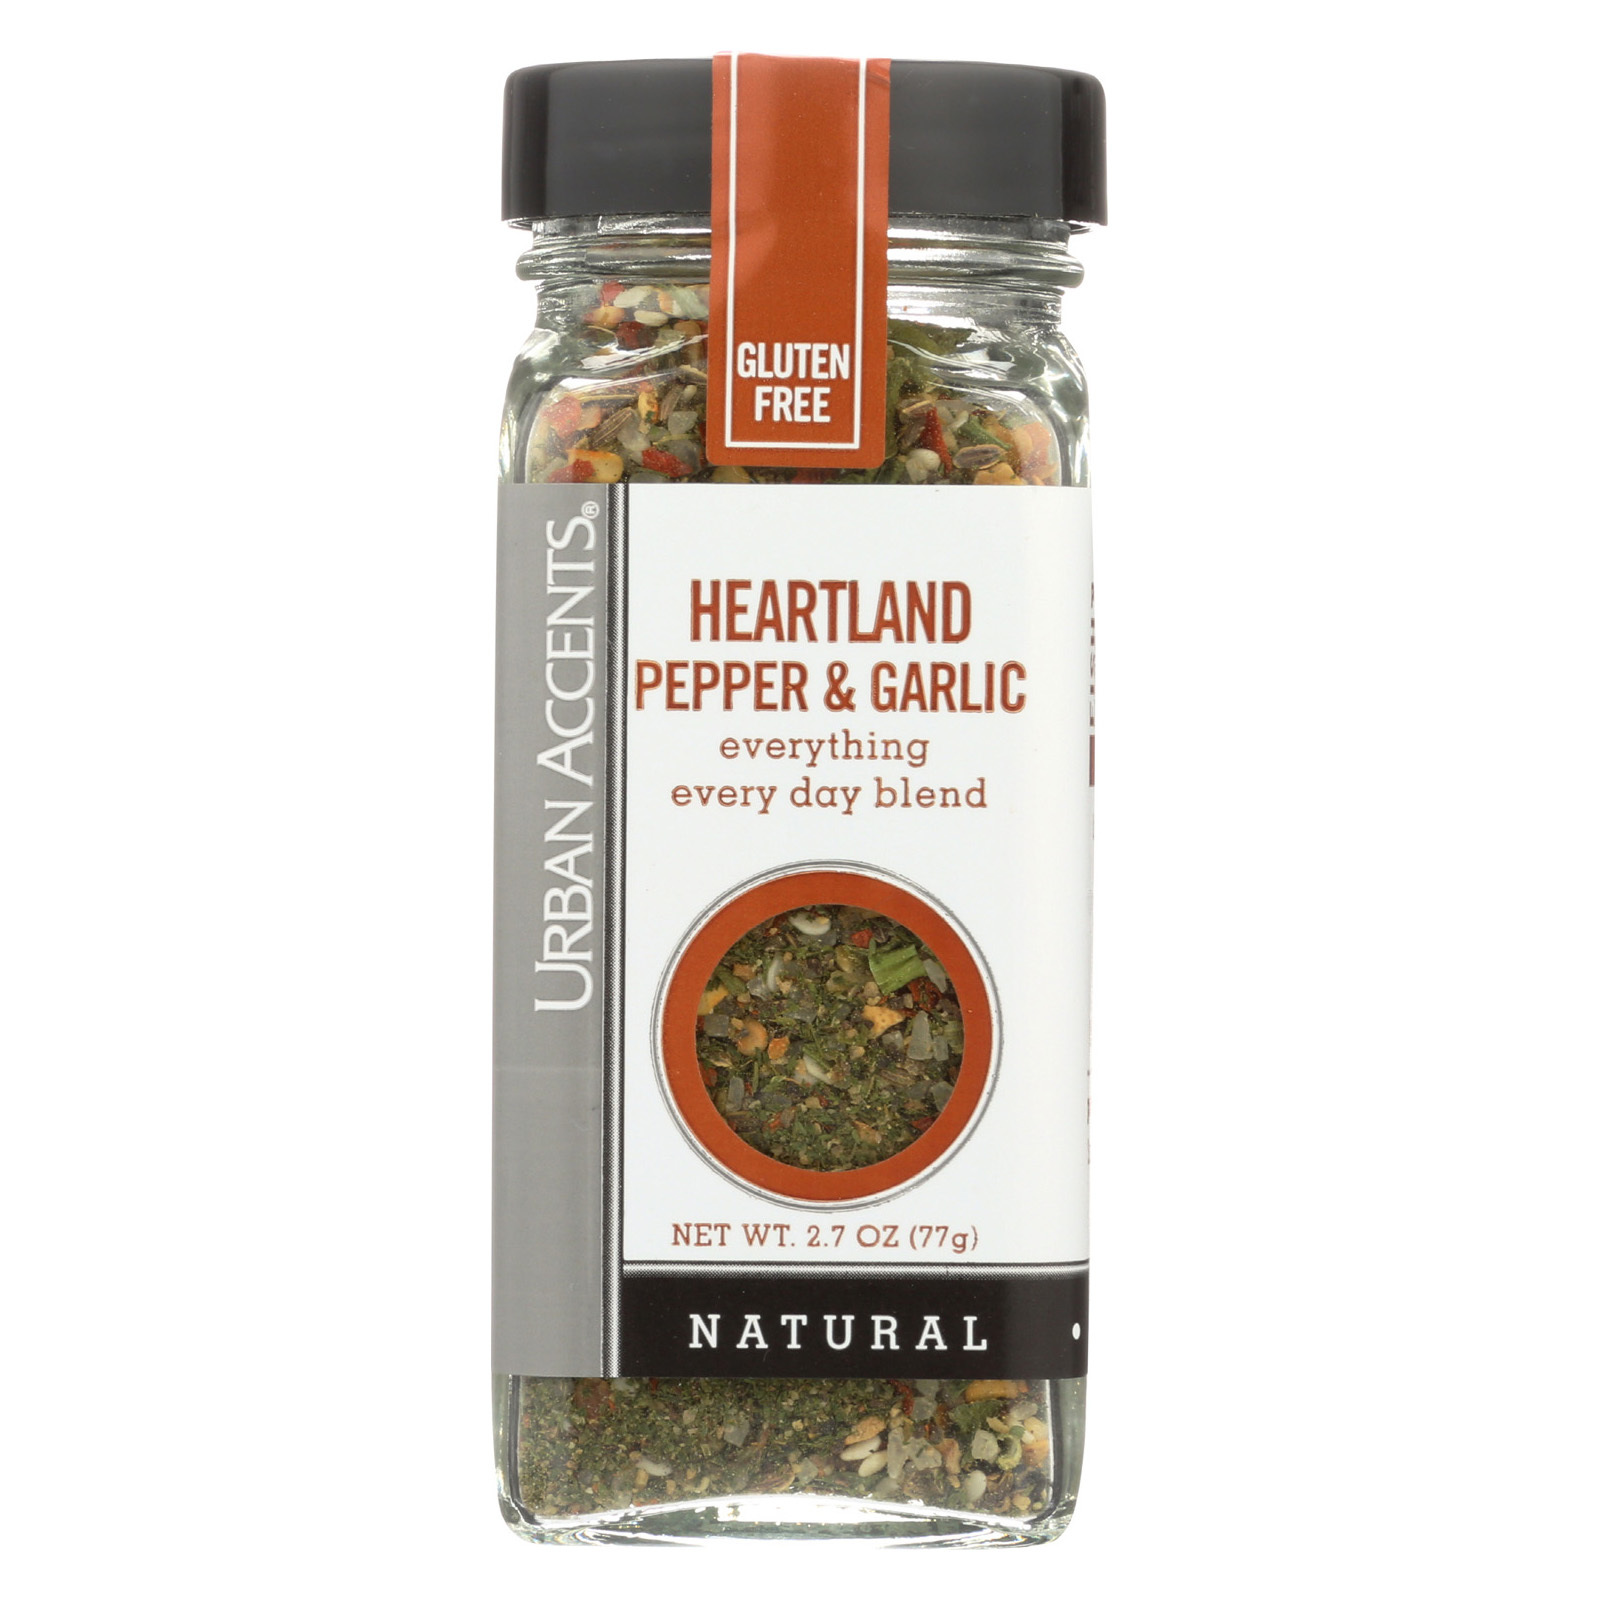 Urban Accents Spice - Heartland Pepper and Garlic - Case of 4 - 2.7 oz